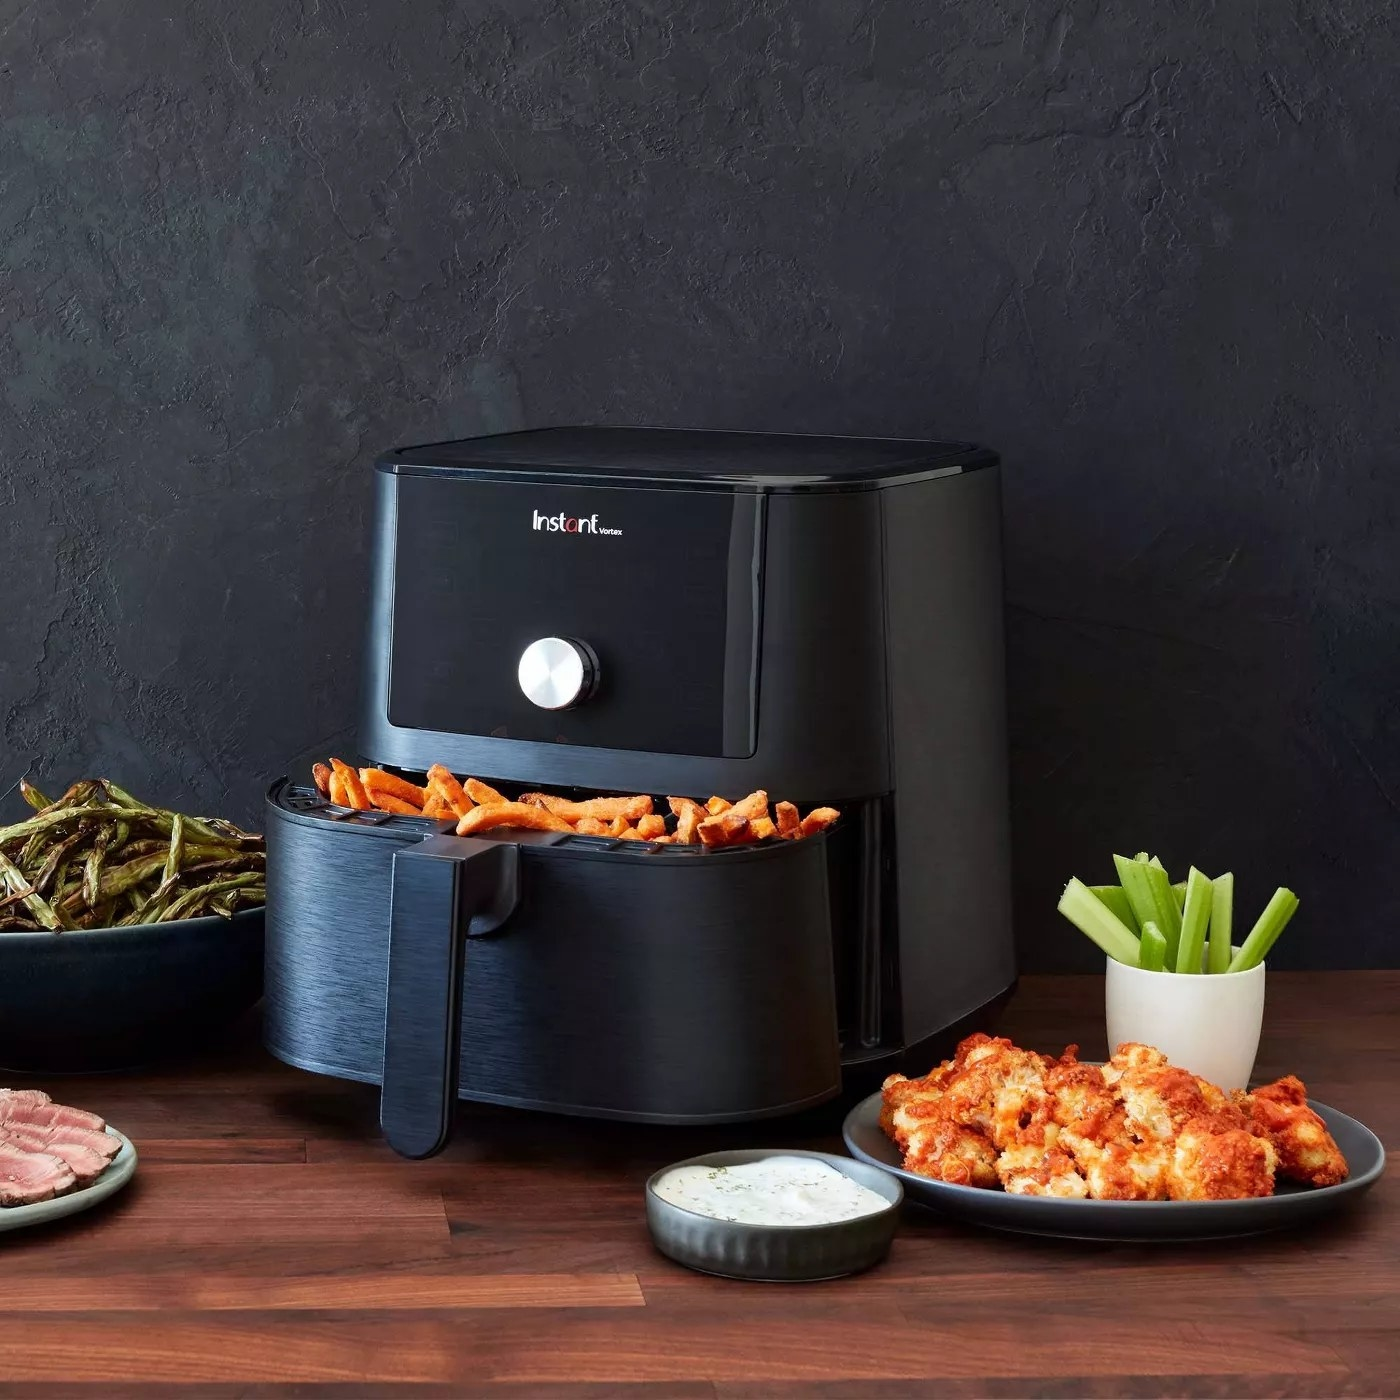 The Instant air fryer oven